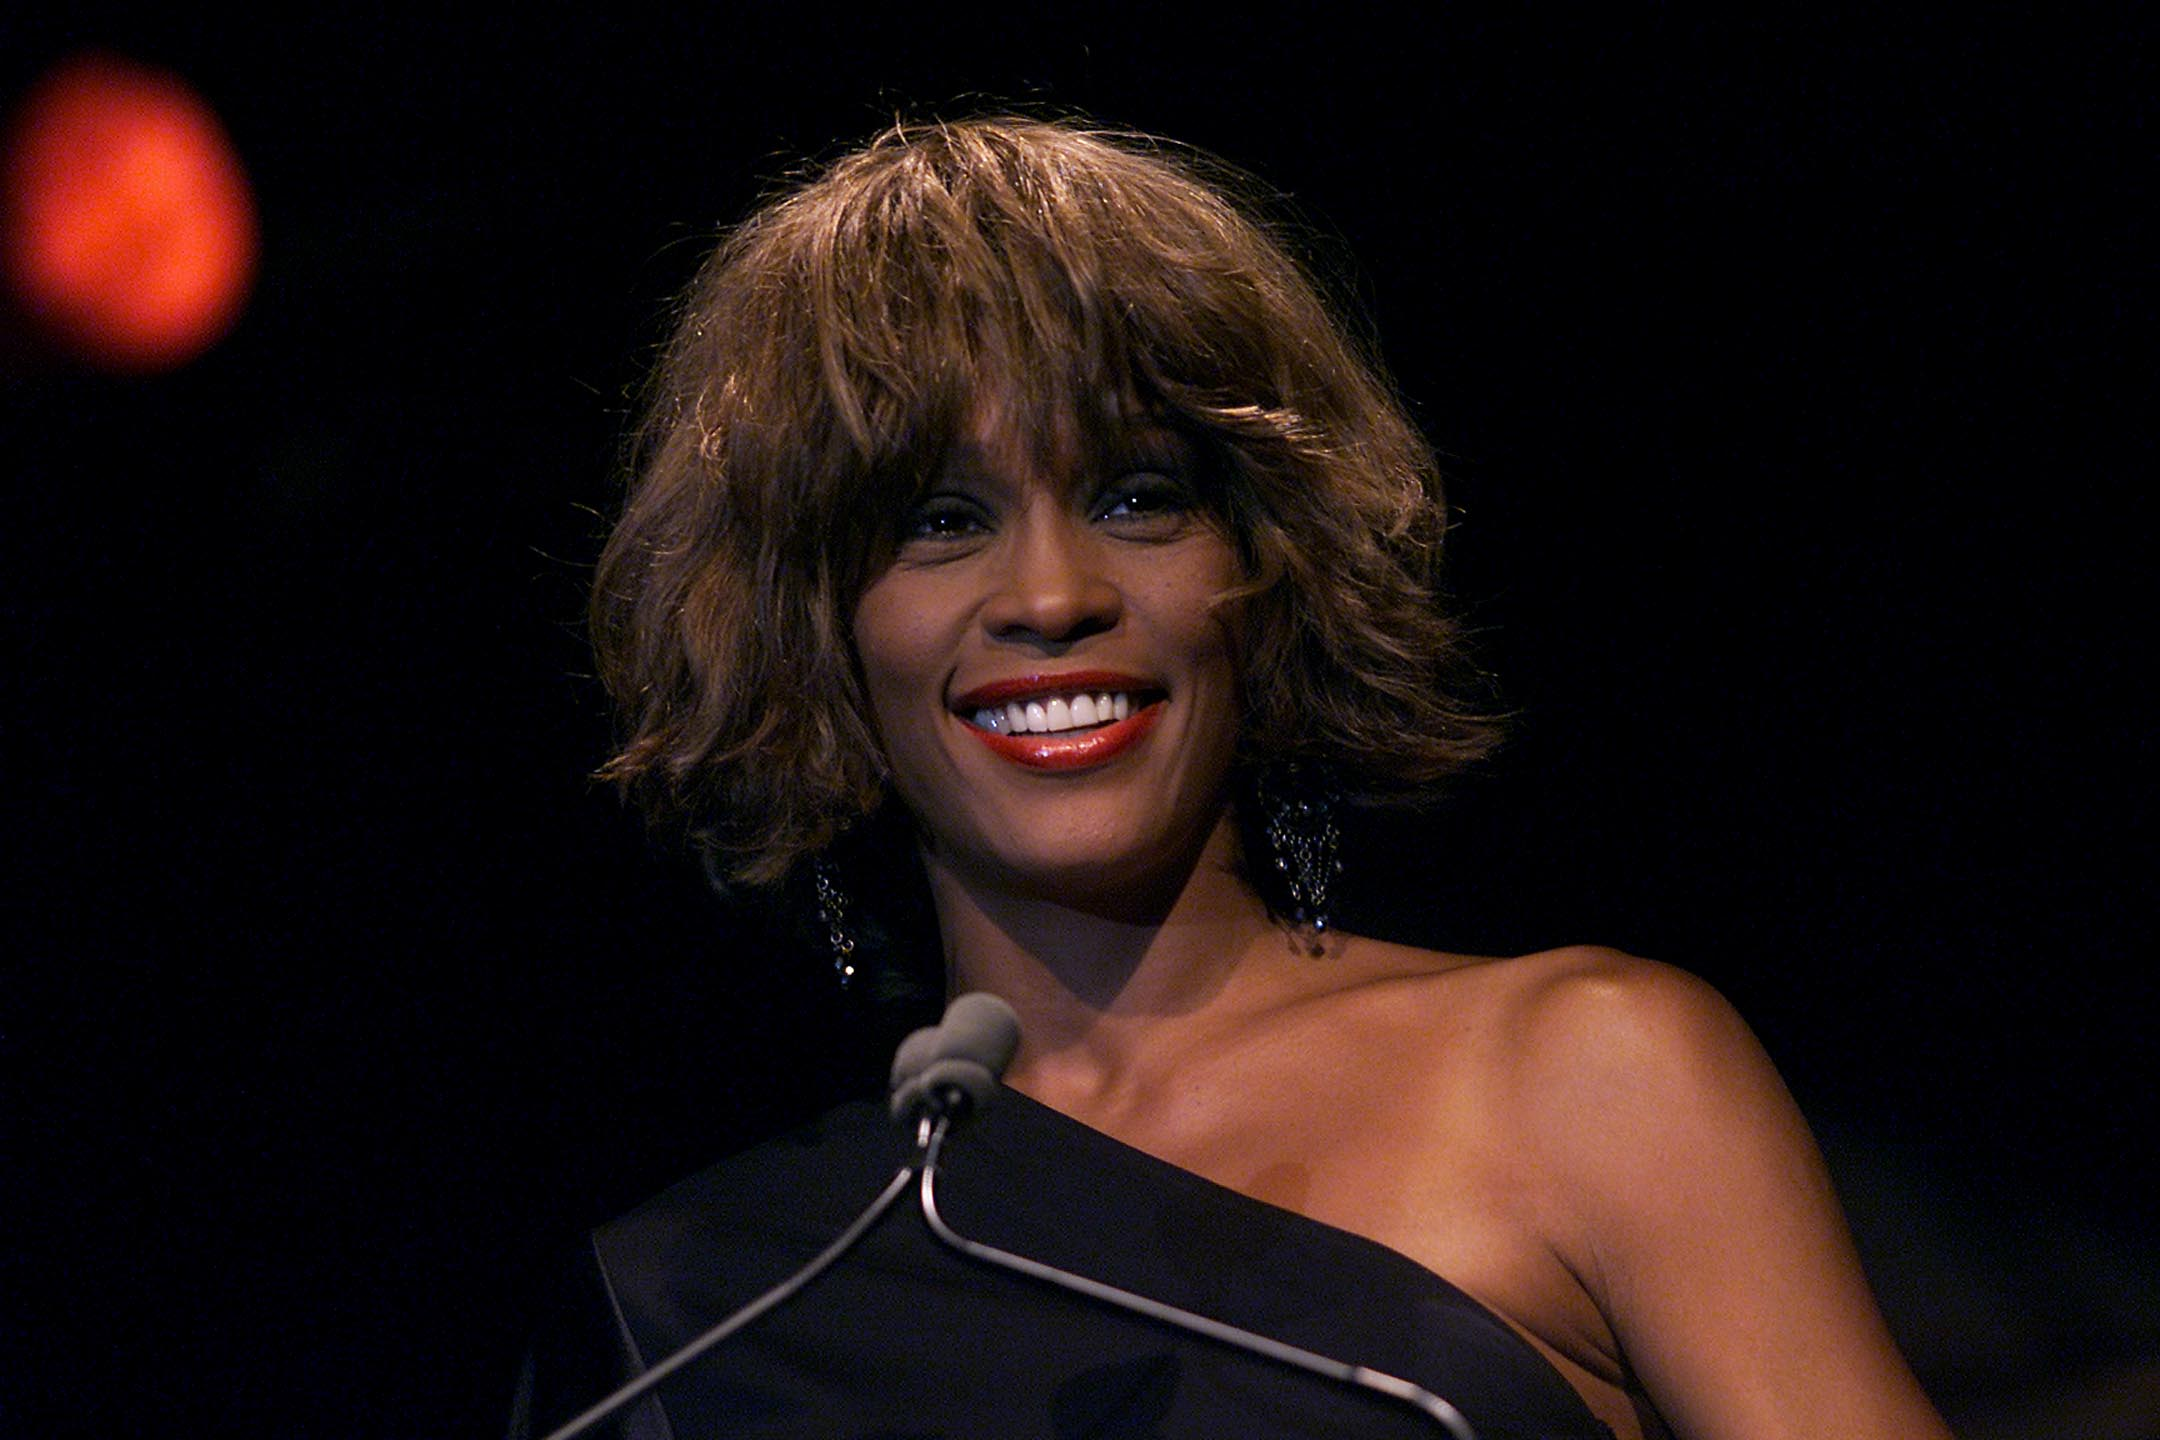 Whitney Houston at the Songwriters Hall of Fame 32nd Annual Awards at The Sheraton New York Hotel and Towers on June 14, 2001 | Photo: GettyImages